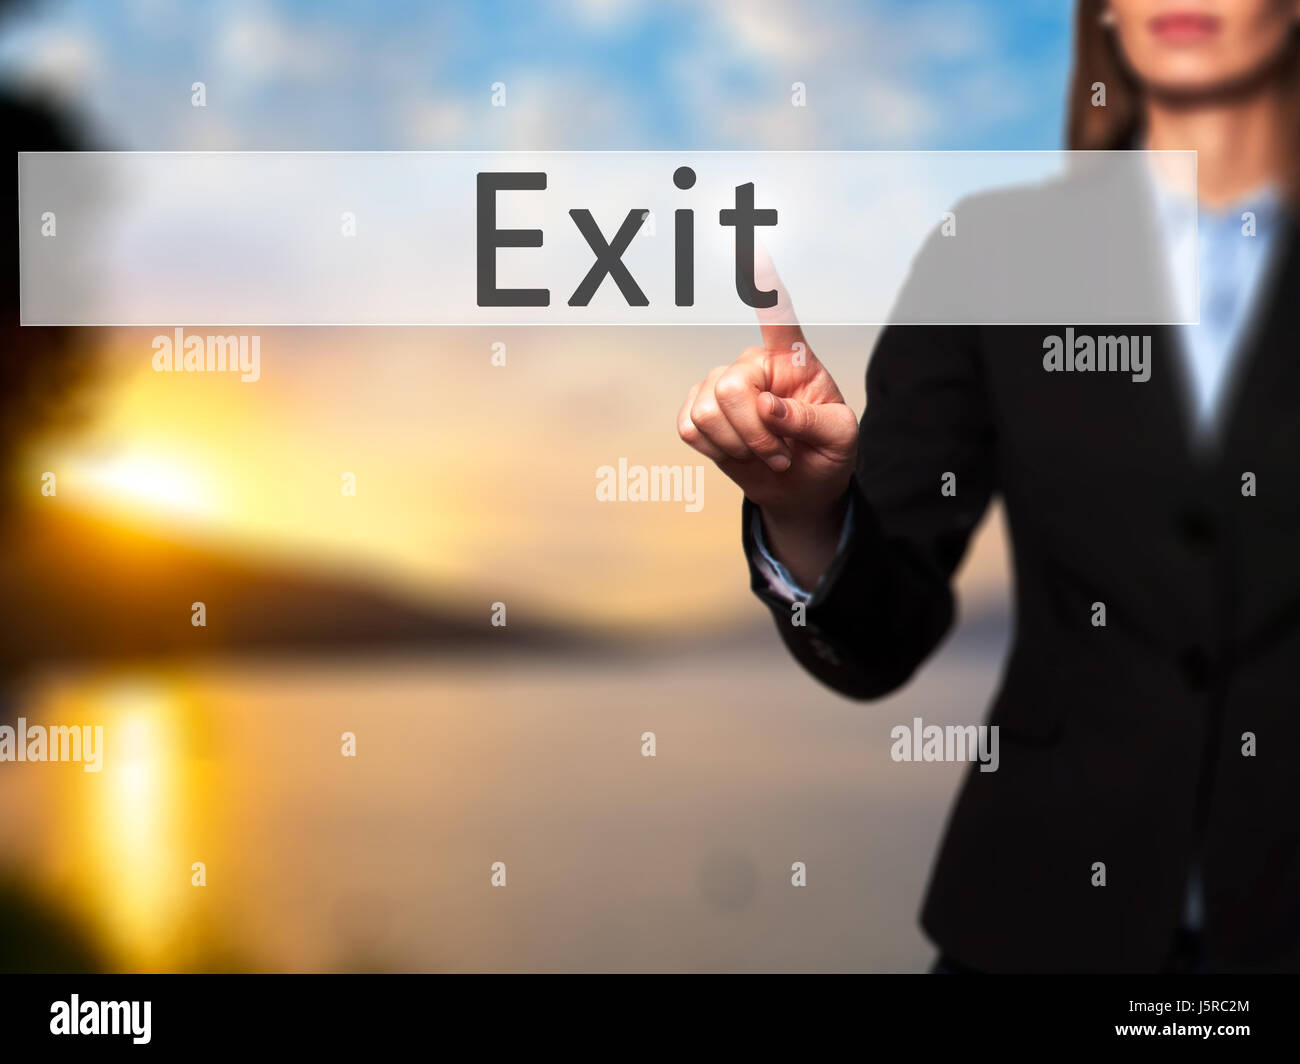 Exit - Businesswoman hand pressing button on touch screen interface. Business, technology, internet concept. Stock - Stock Image